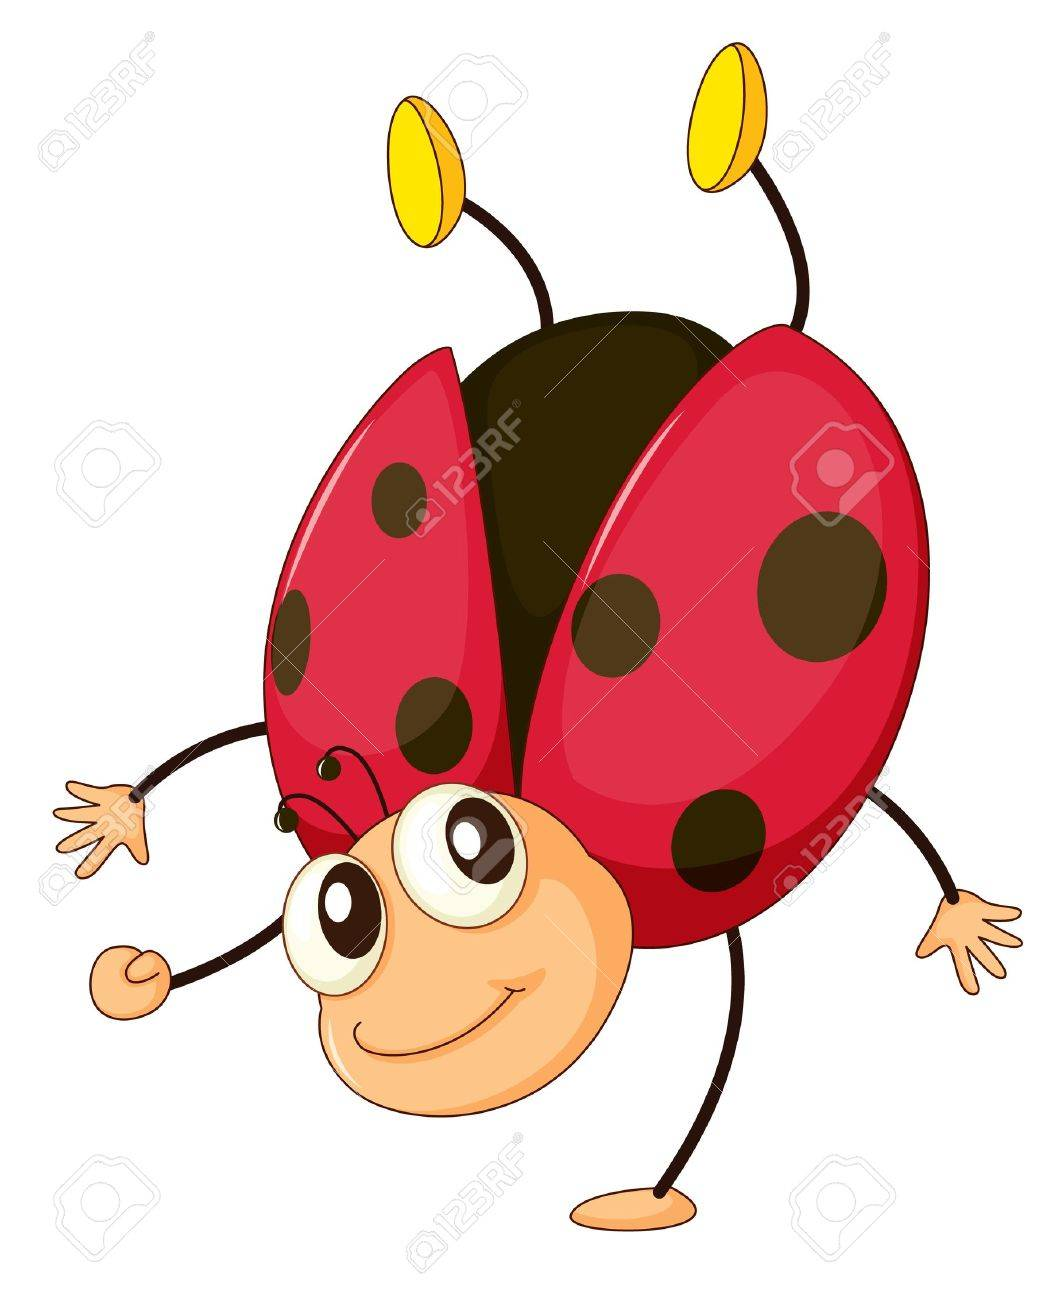 1064x1300 21,782 Ladybird Stock Vector Illustration And Royalty Free